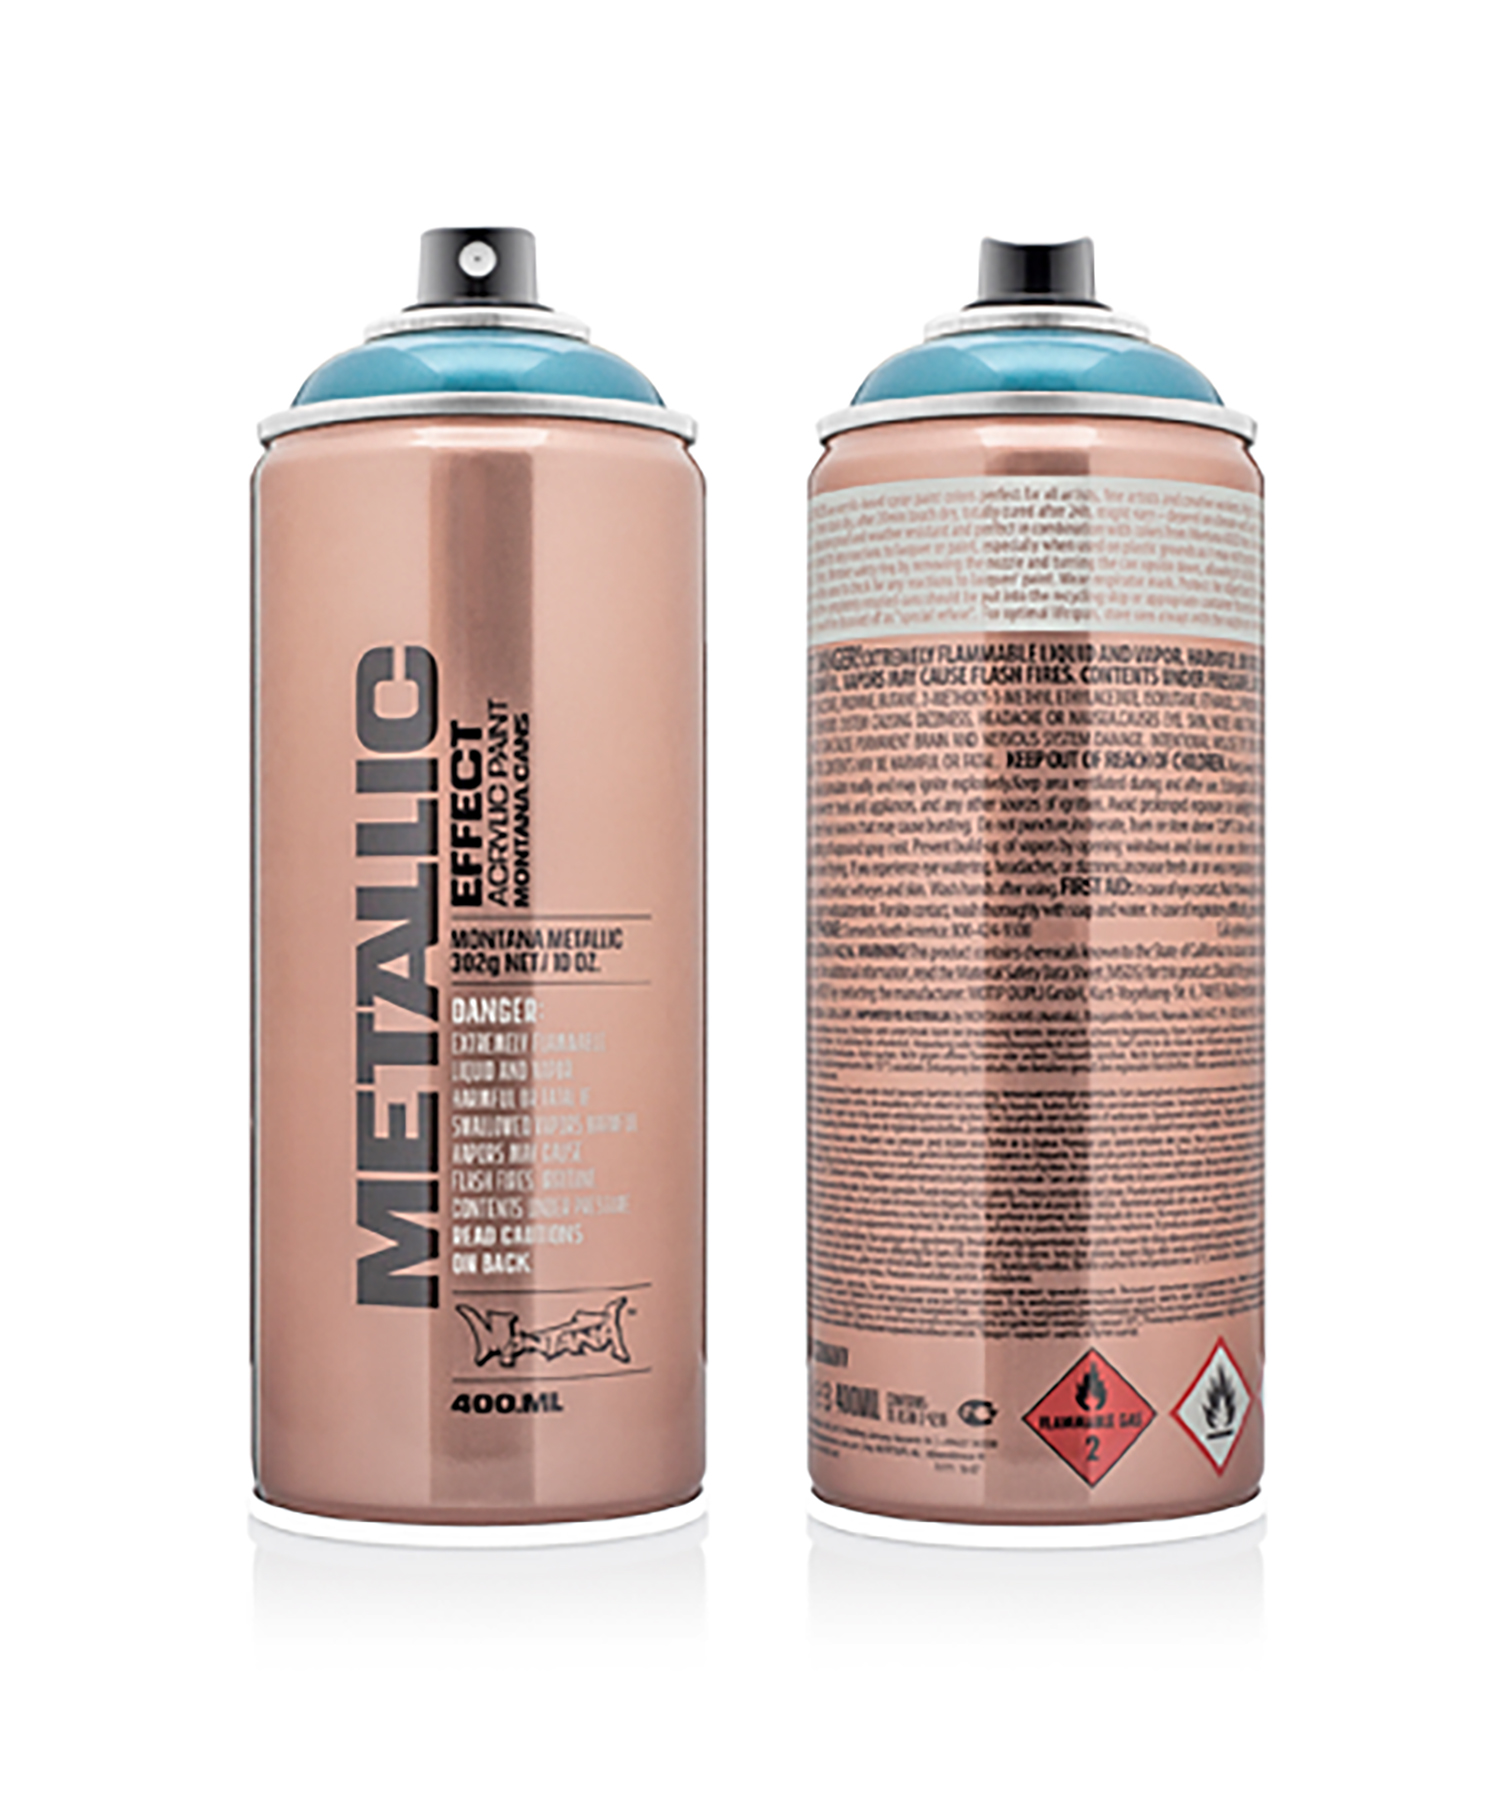 MONTANA-EFFECT-METALLIC-SPRAY-400ML_EMC6210